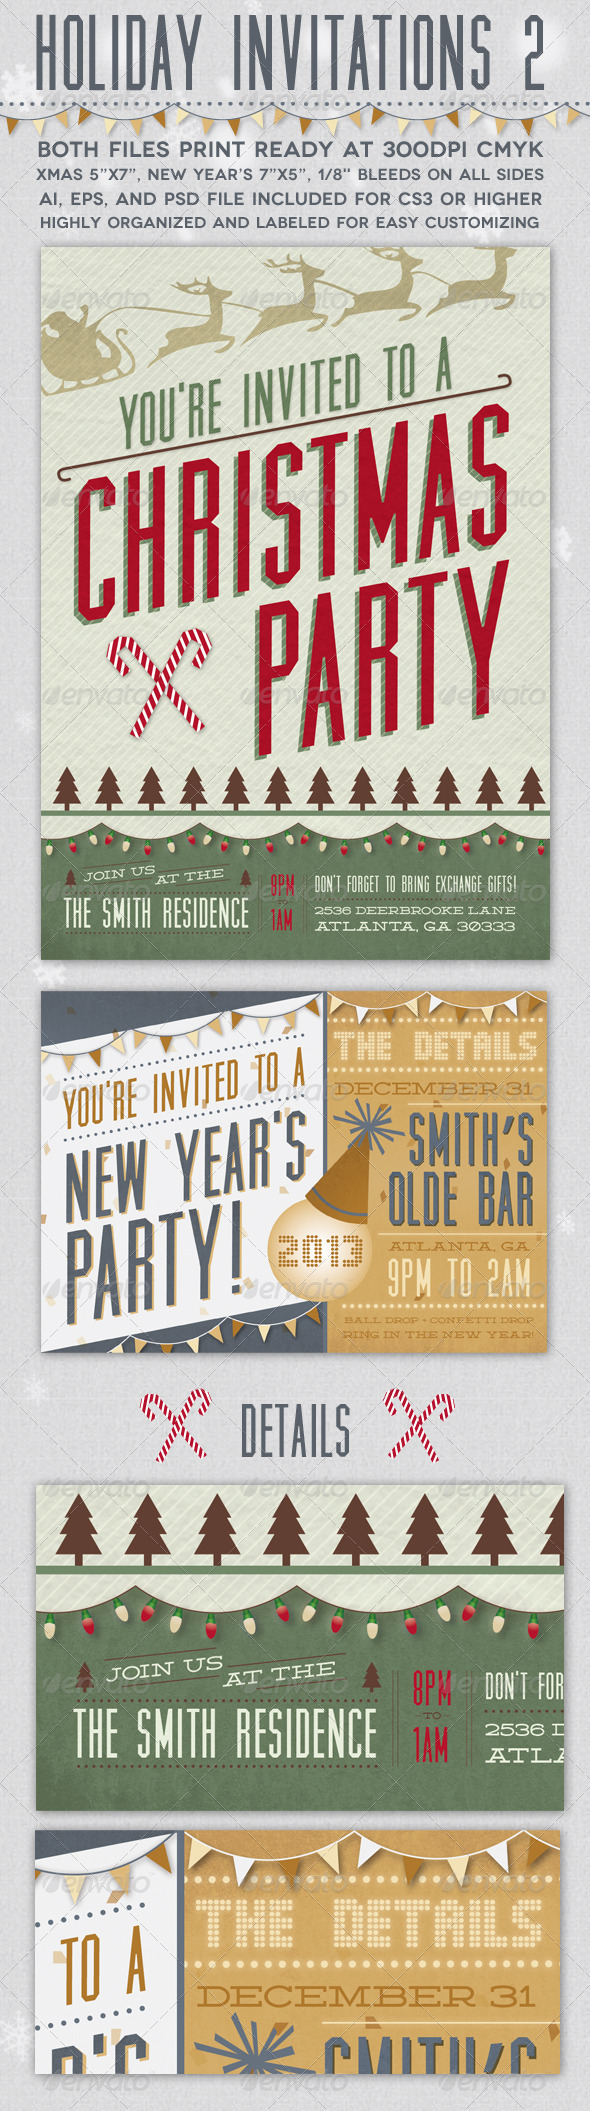 GraphicRiver Holiday Invitations 2 3411371